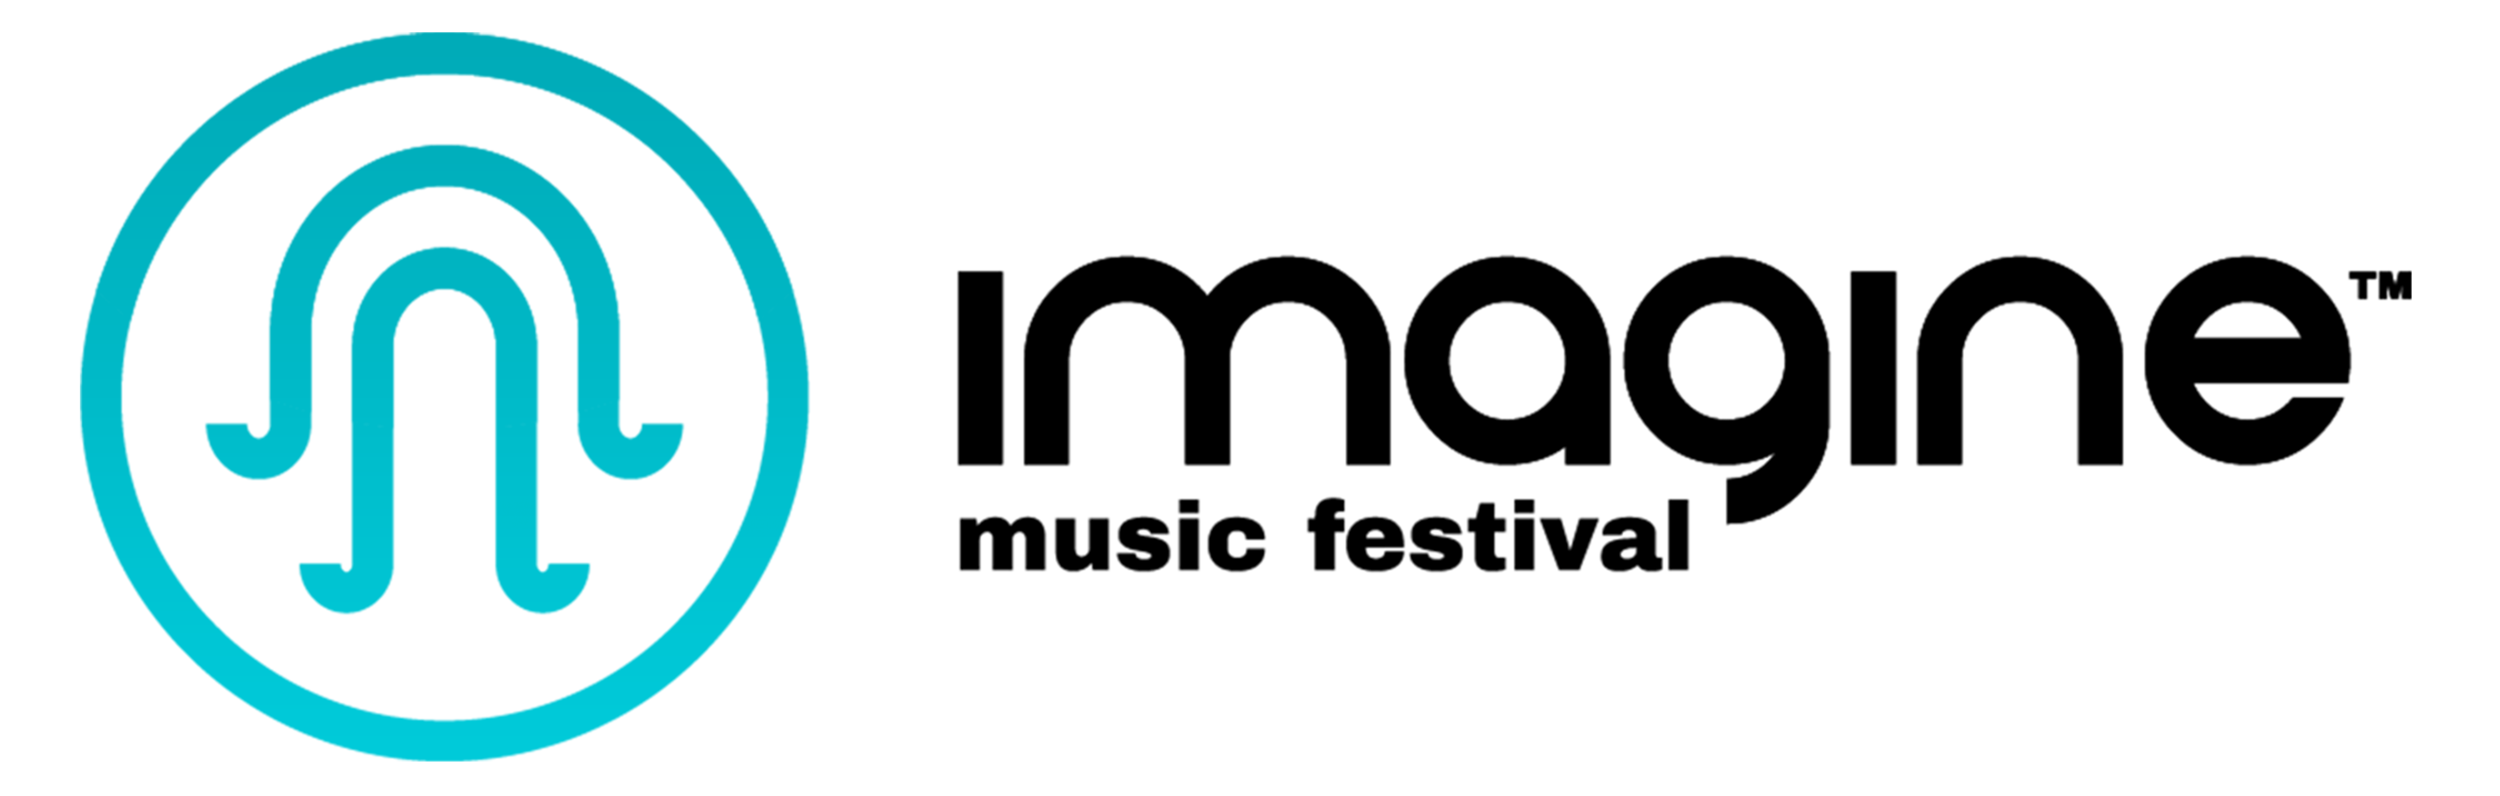 IMF_logo_Color.png